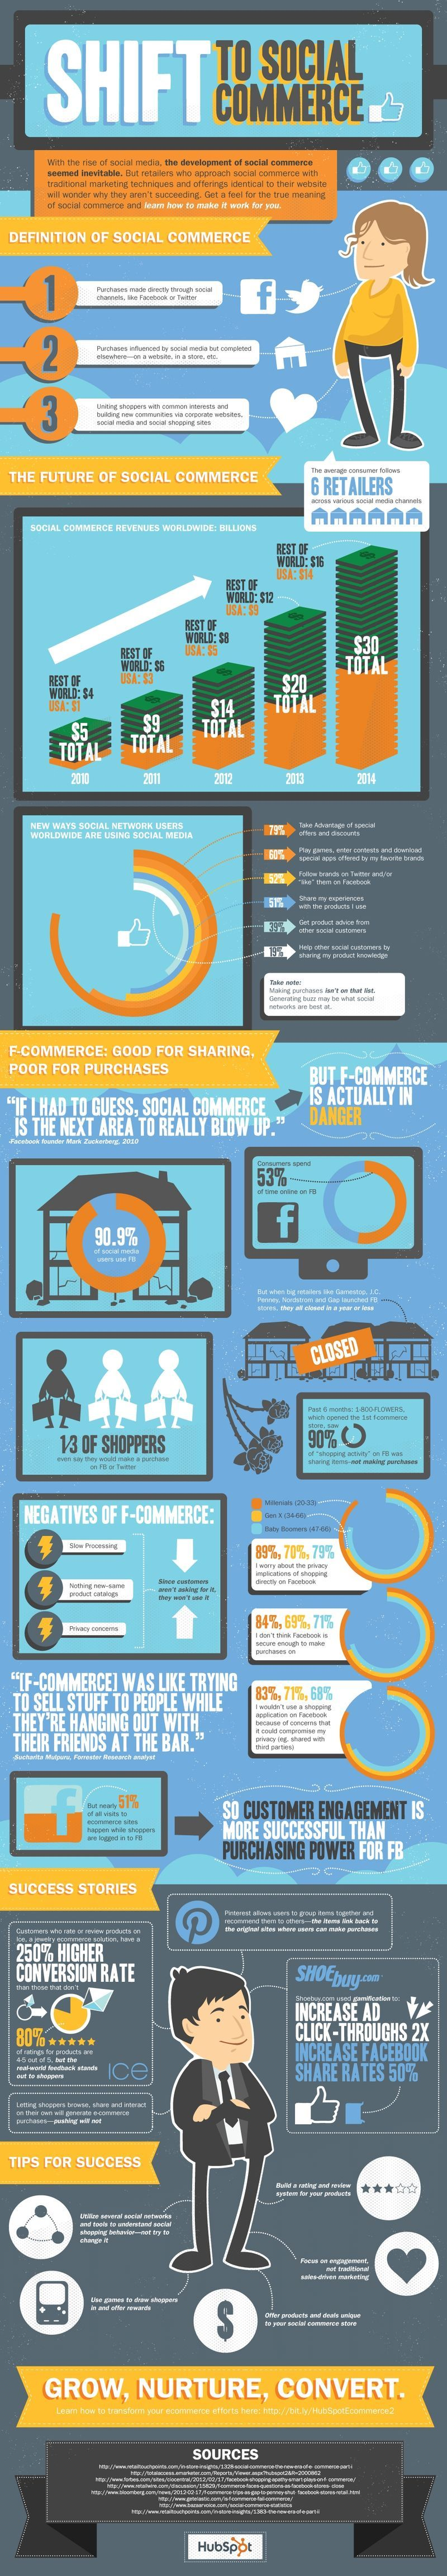 Shift to Social Commerce (infographic)